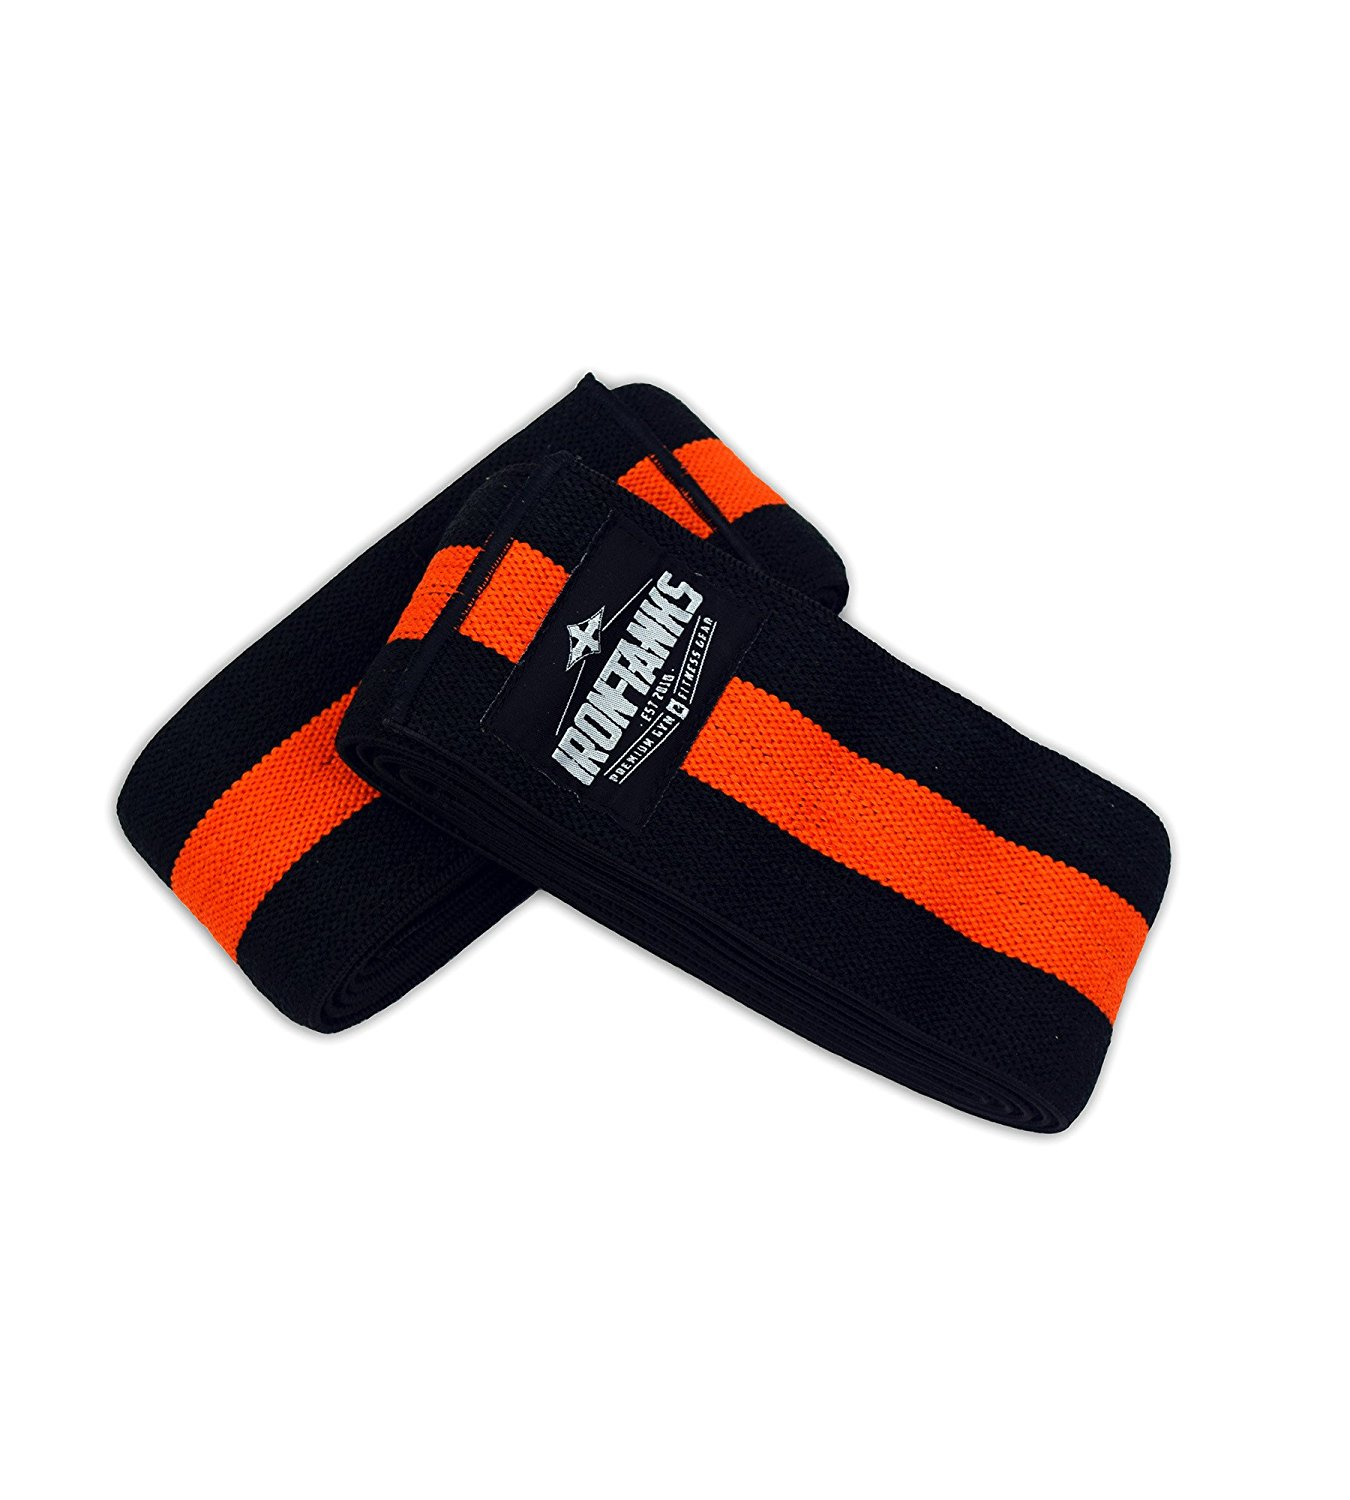 Iron Tanks Heavy 2M Knee Wraps - Bodybuilding Powerlifting Weightlifting 2 Metre / 78""